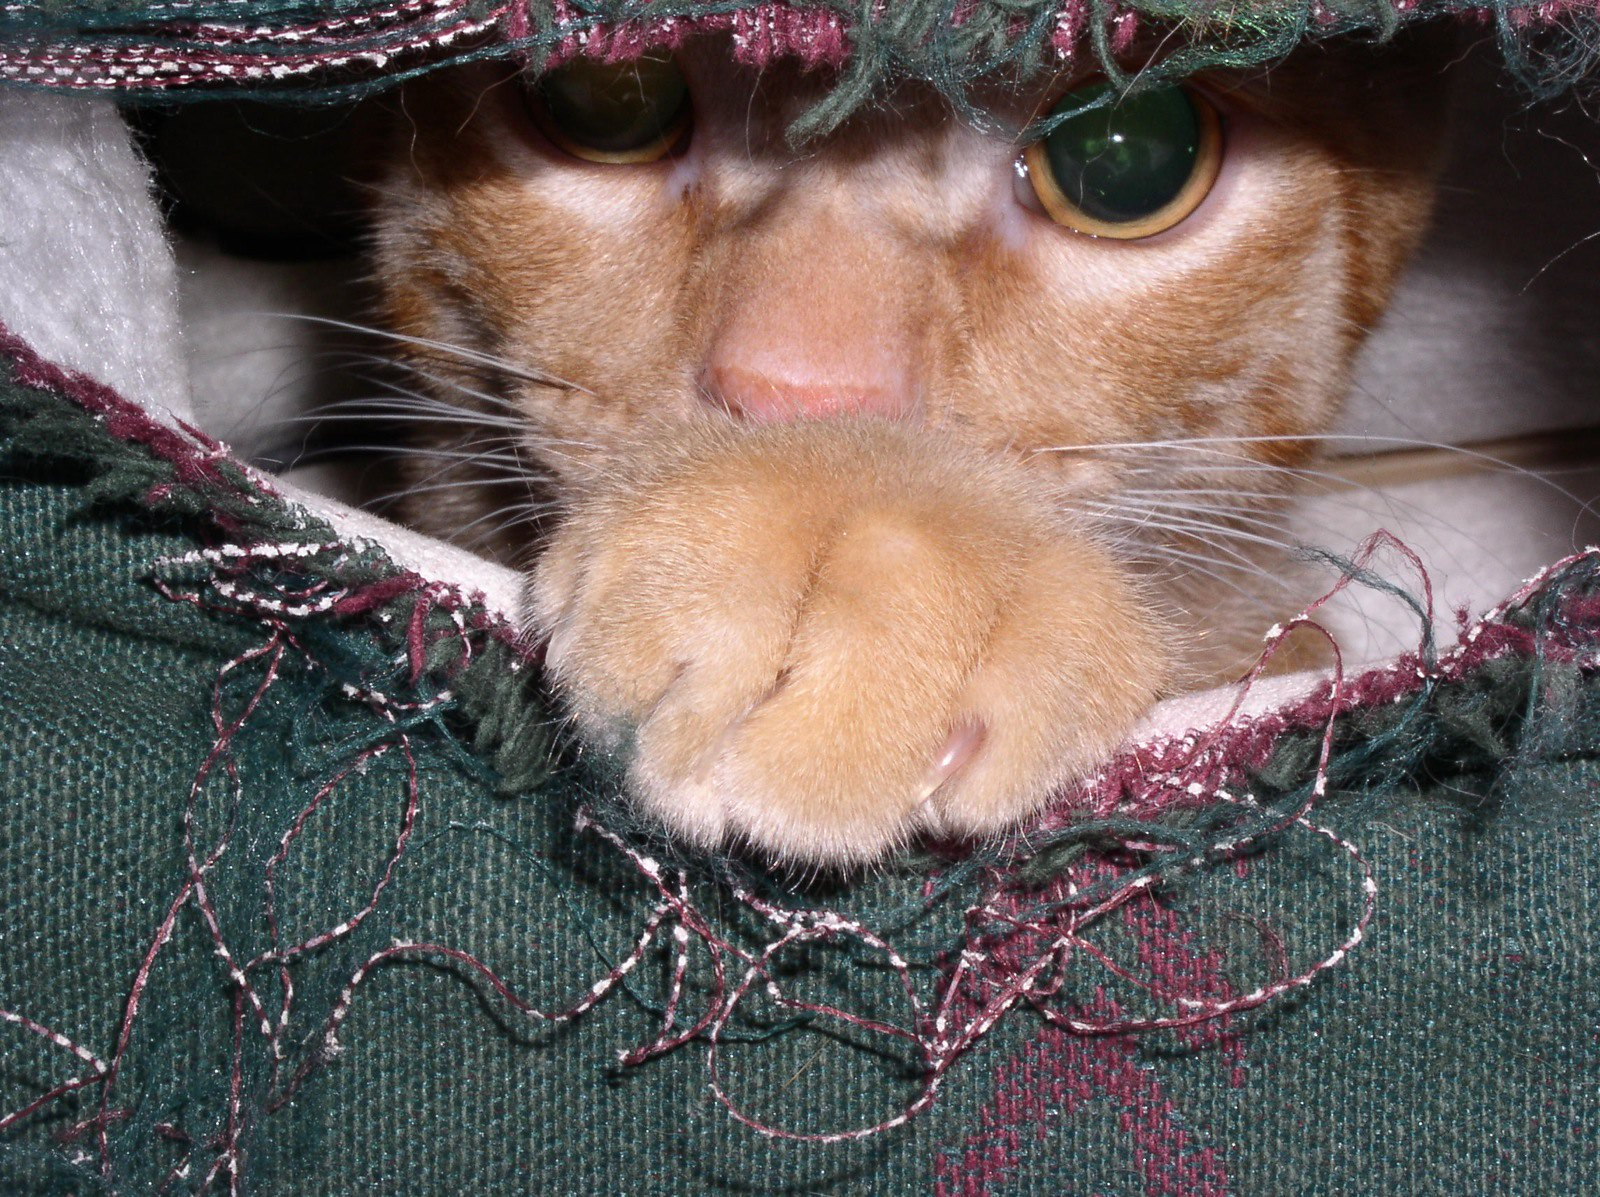 Cat playing peek-a-boo from the inside of a couch. Unlike the damage to the furniture, the cat is adorable.